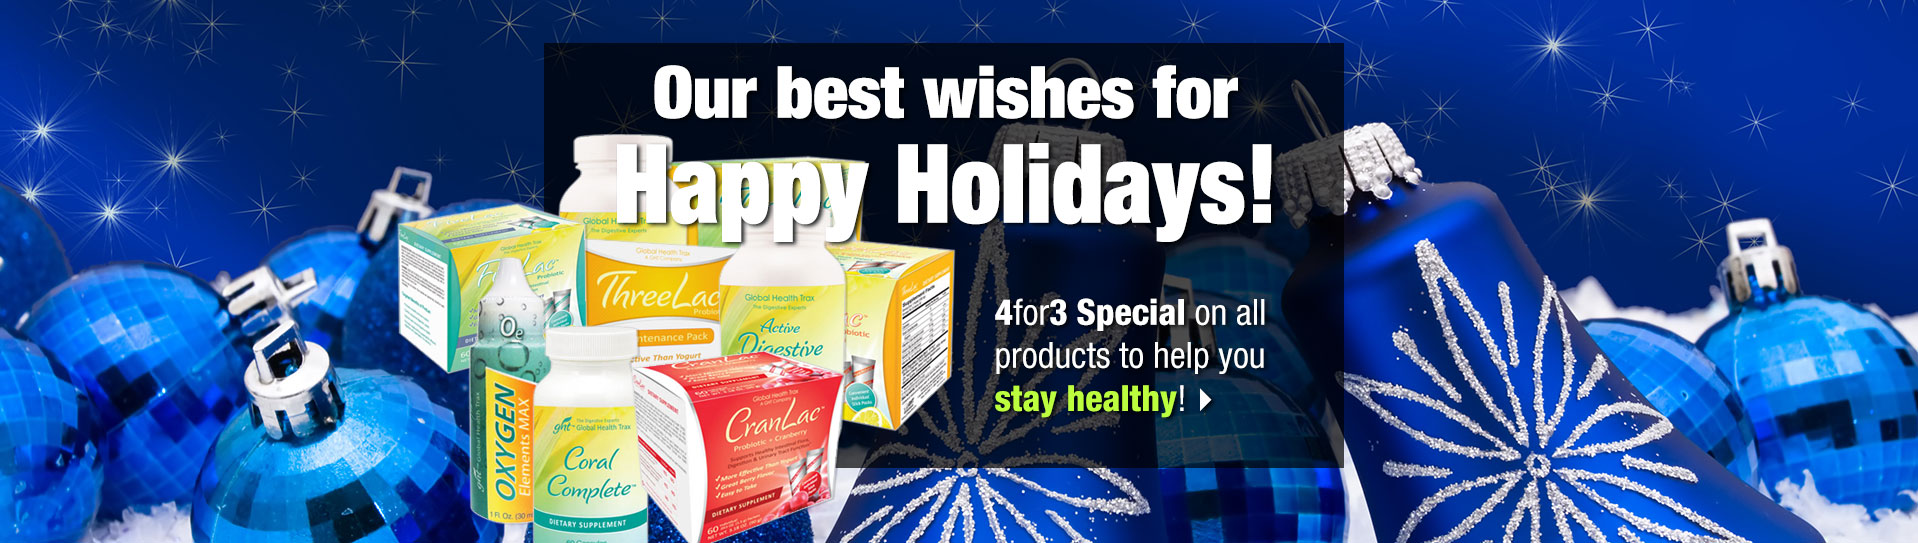 Happy Holidays offer with product montage